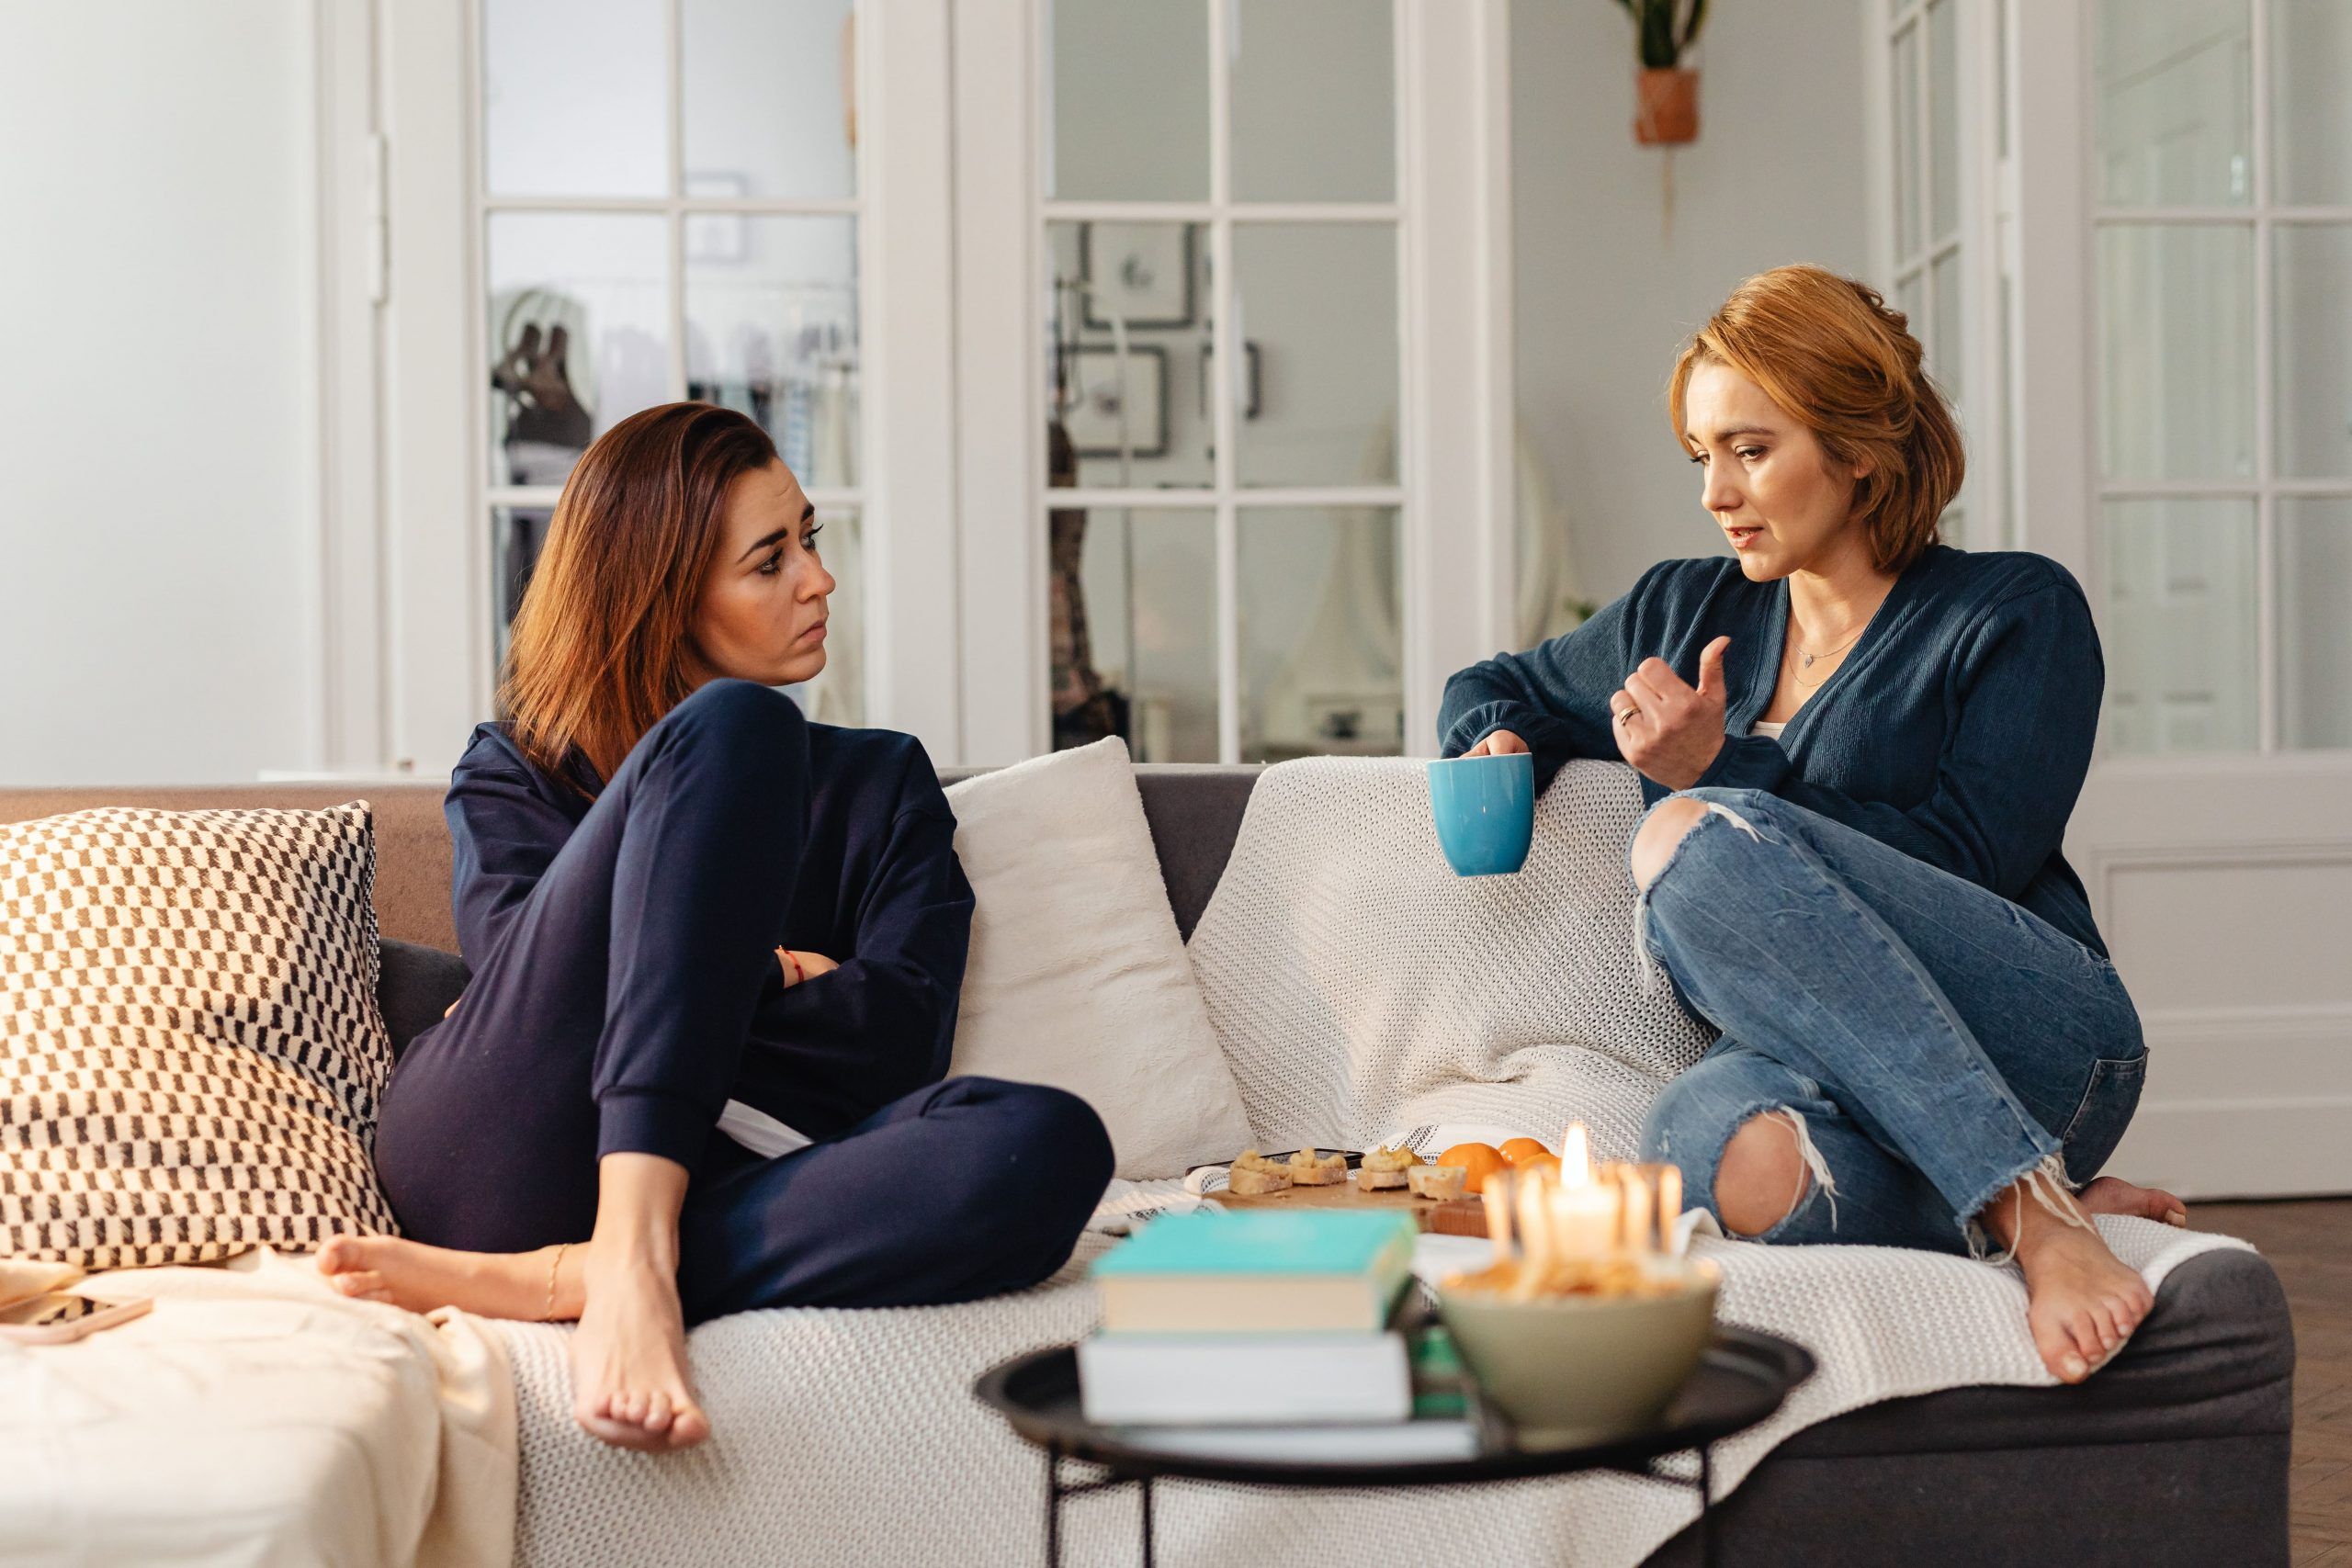 woman sitting with her friend who is experiencing addiction